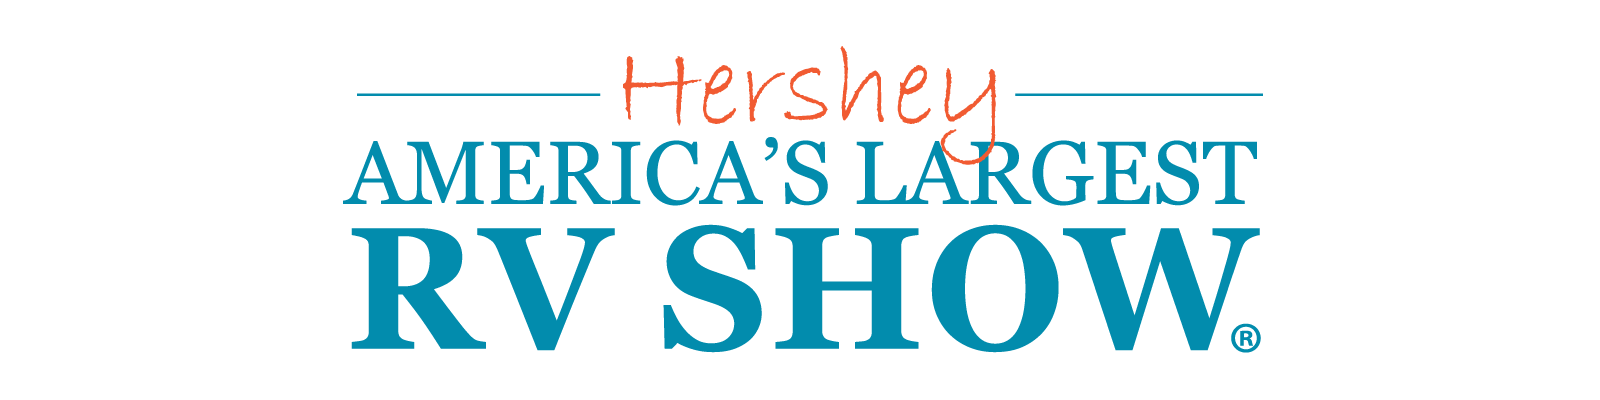 Show logo new2 png